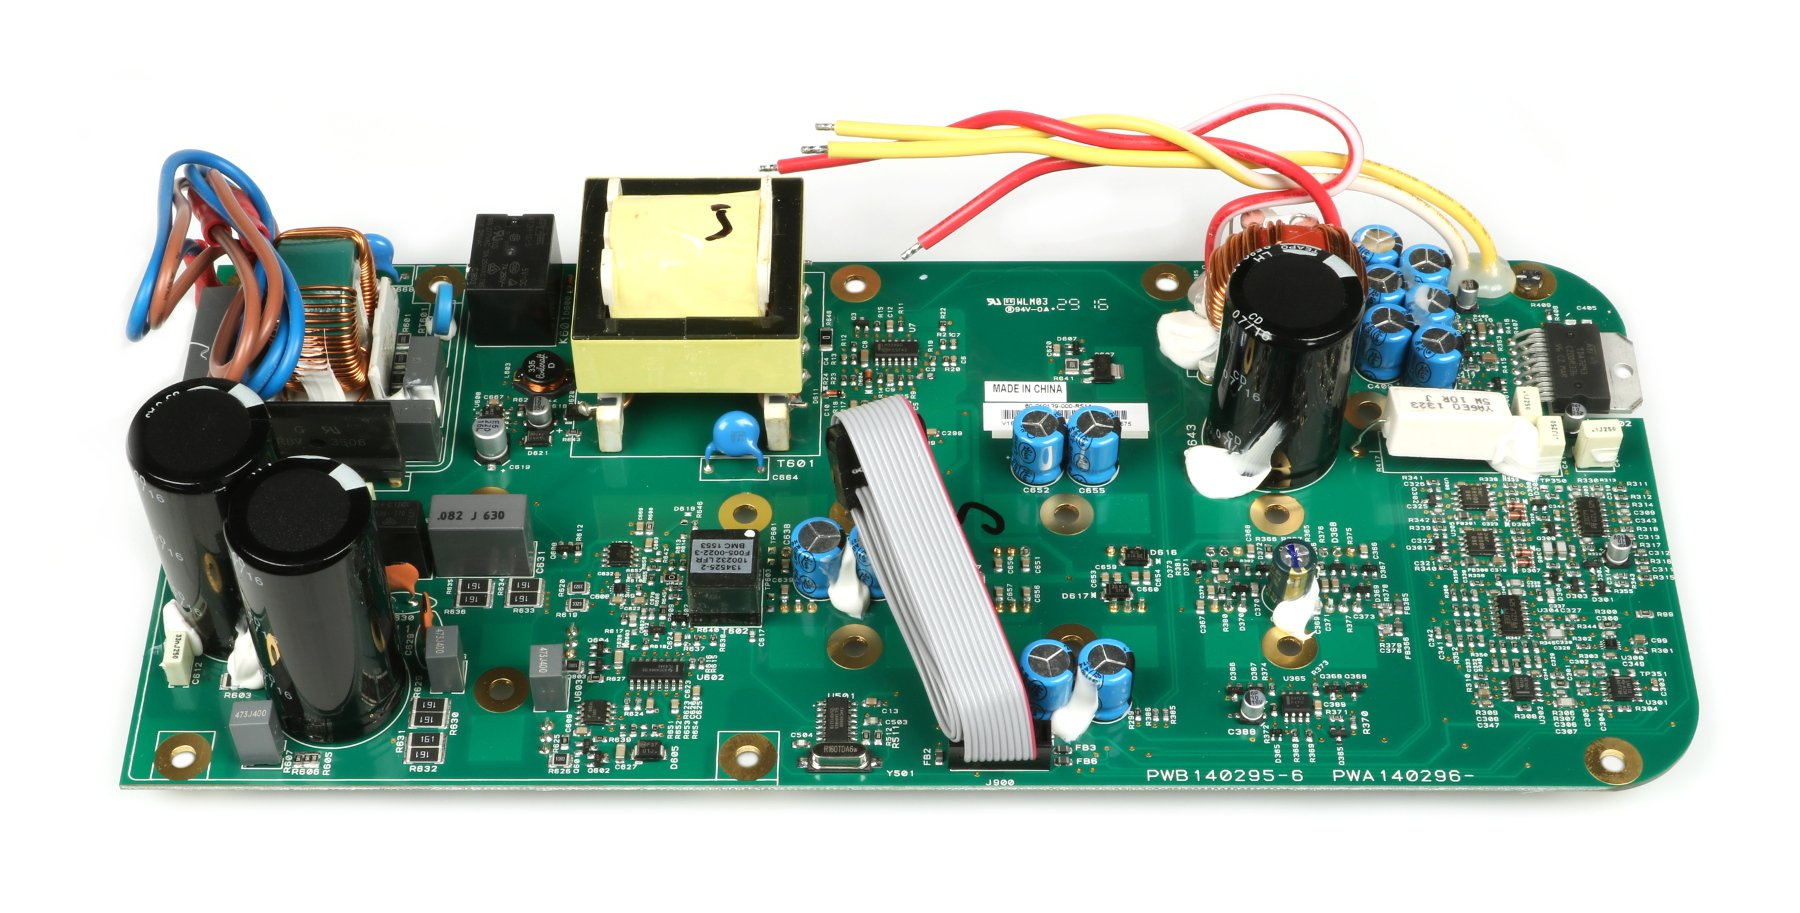 JBL 140296-6JBL Amplifier PCB For EON 515 And EON 515XT on